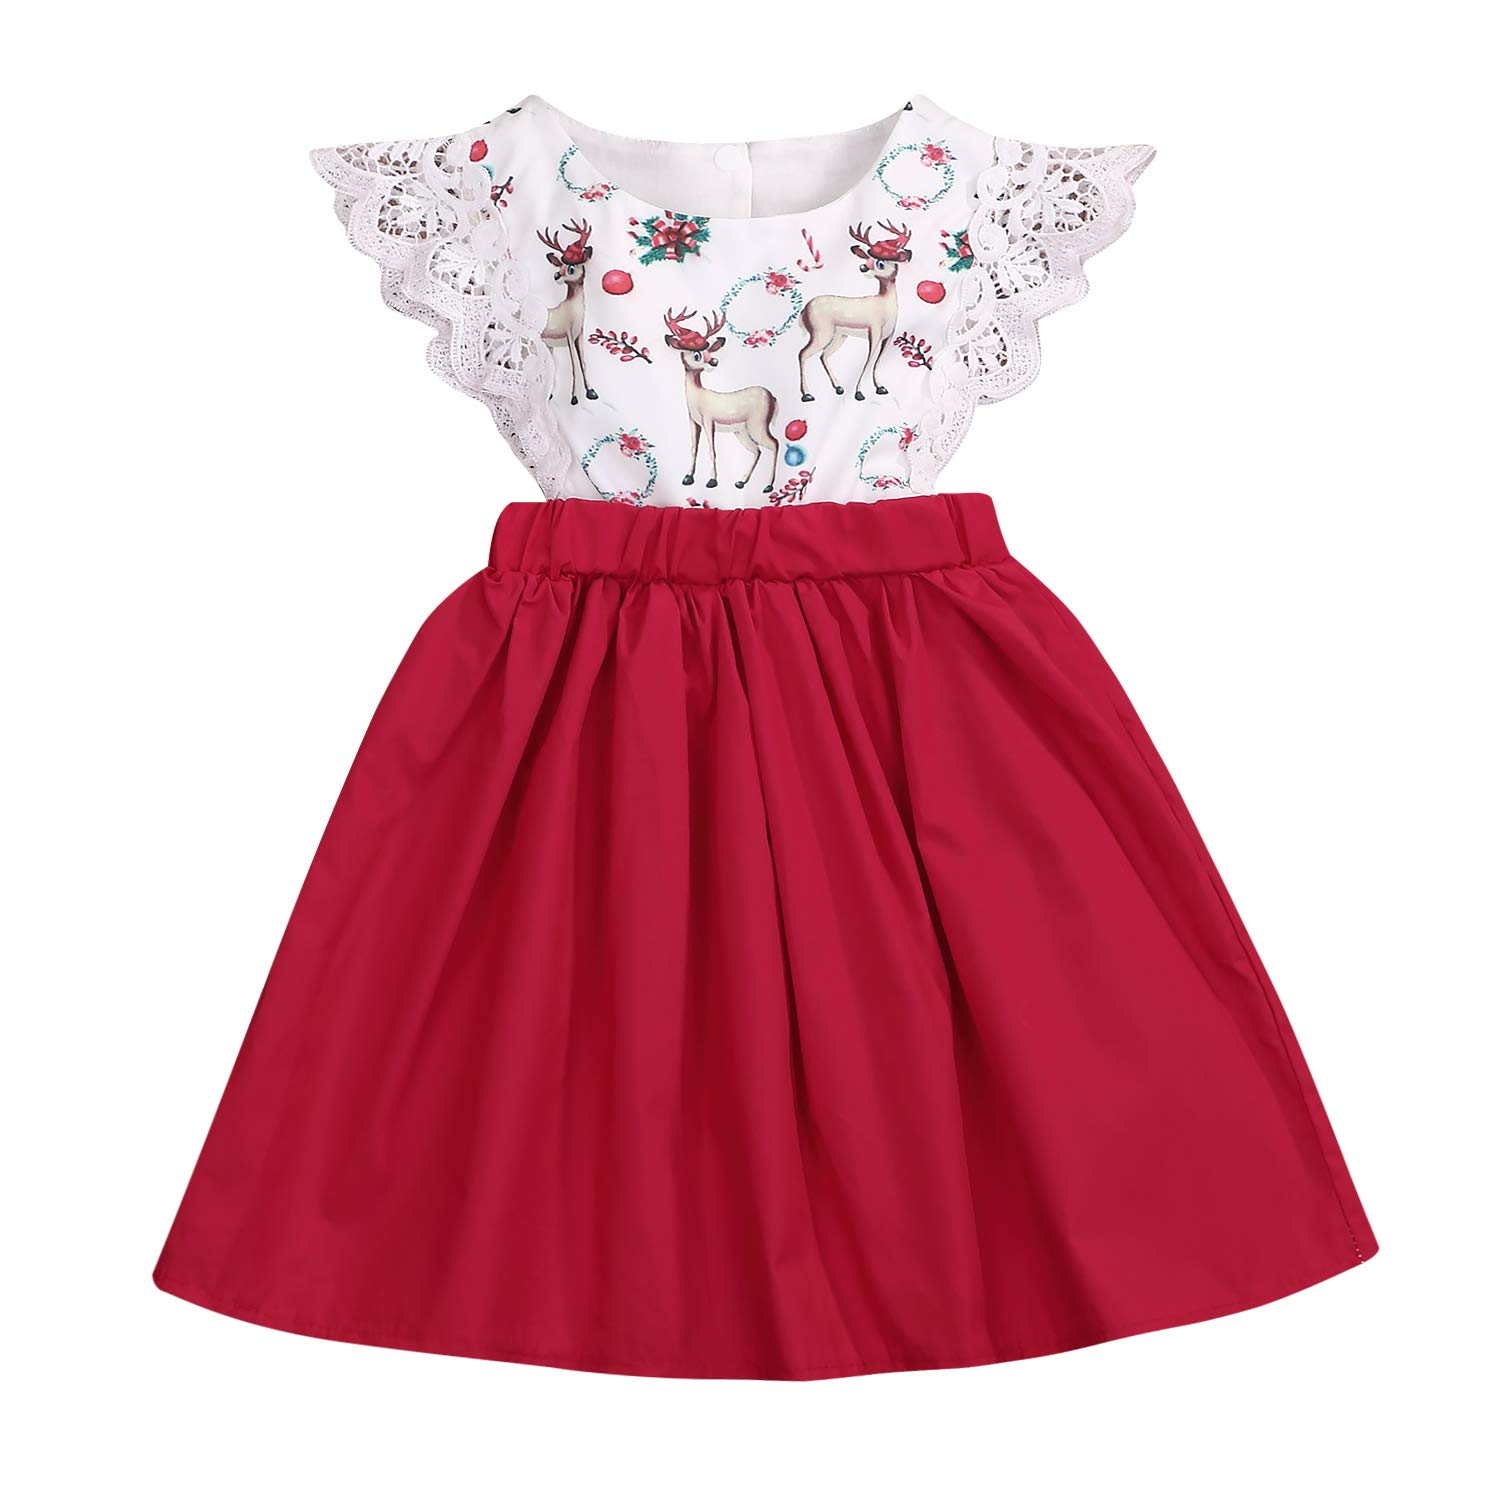 7eb7c1c54 Amazon.com: Baby Girl Christmas Dress Matching Newborn Girl Bodysuit Deer  Print Lace Princess Skirt Infant Romper Clothes Outfits Set: Clothing